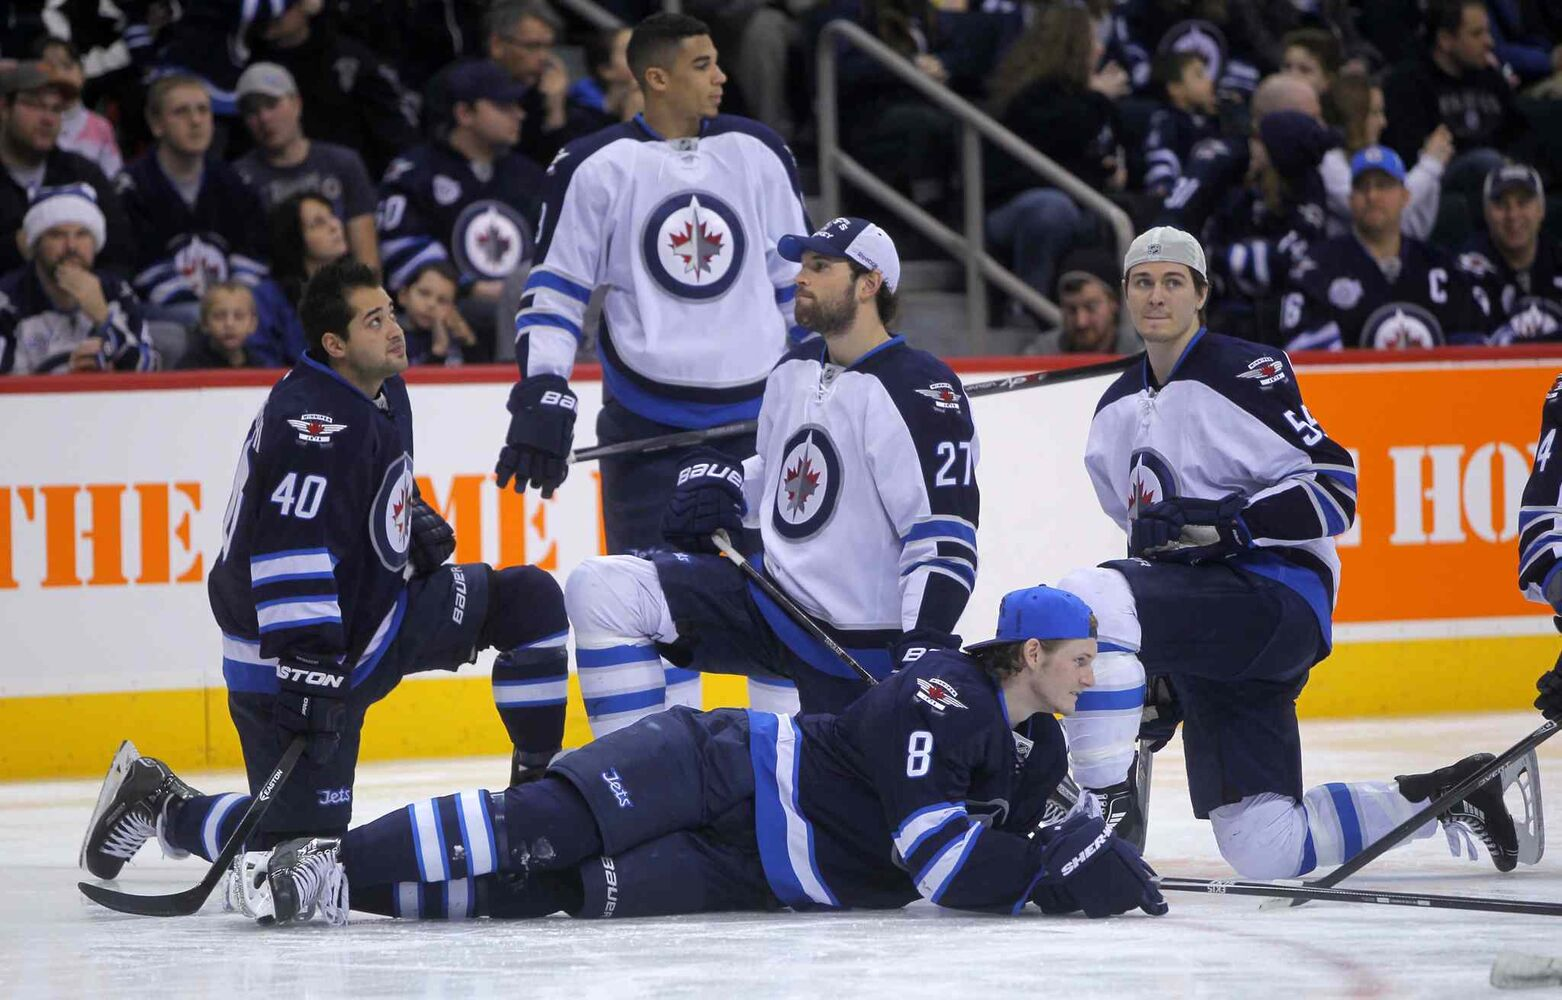 Members of the Winnipeg Jets were split up into Team White and Team Blue for the skills competition. Clockwise, from left: Devin Setoguchi, Evander Kane, Eric Tangradi, Mark Scheifele and Jacob Trouba. (Boris Minkevich / Winnipeg Free Press)